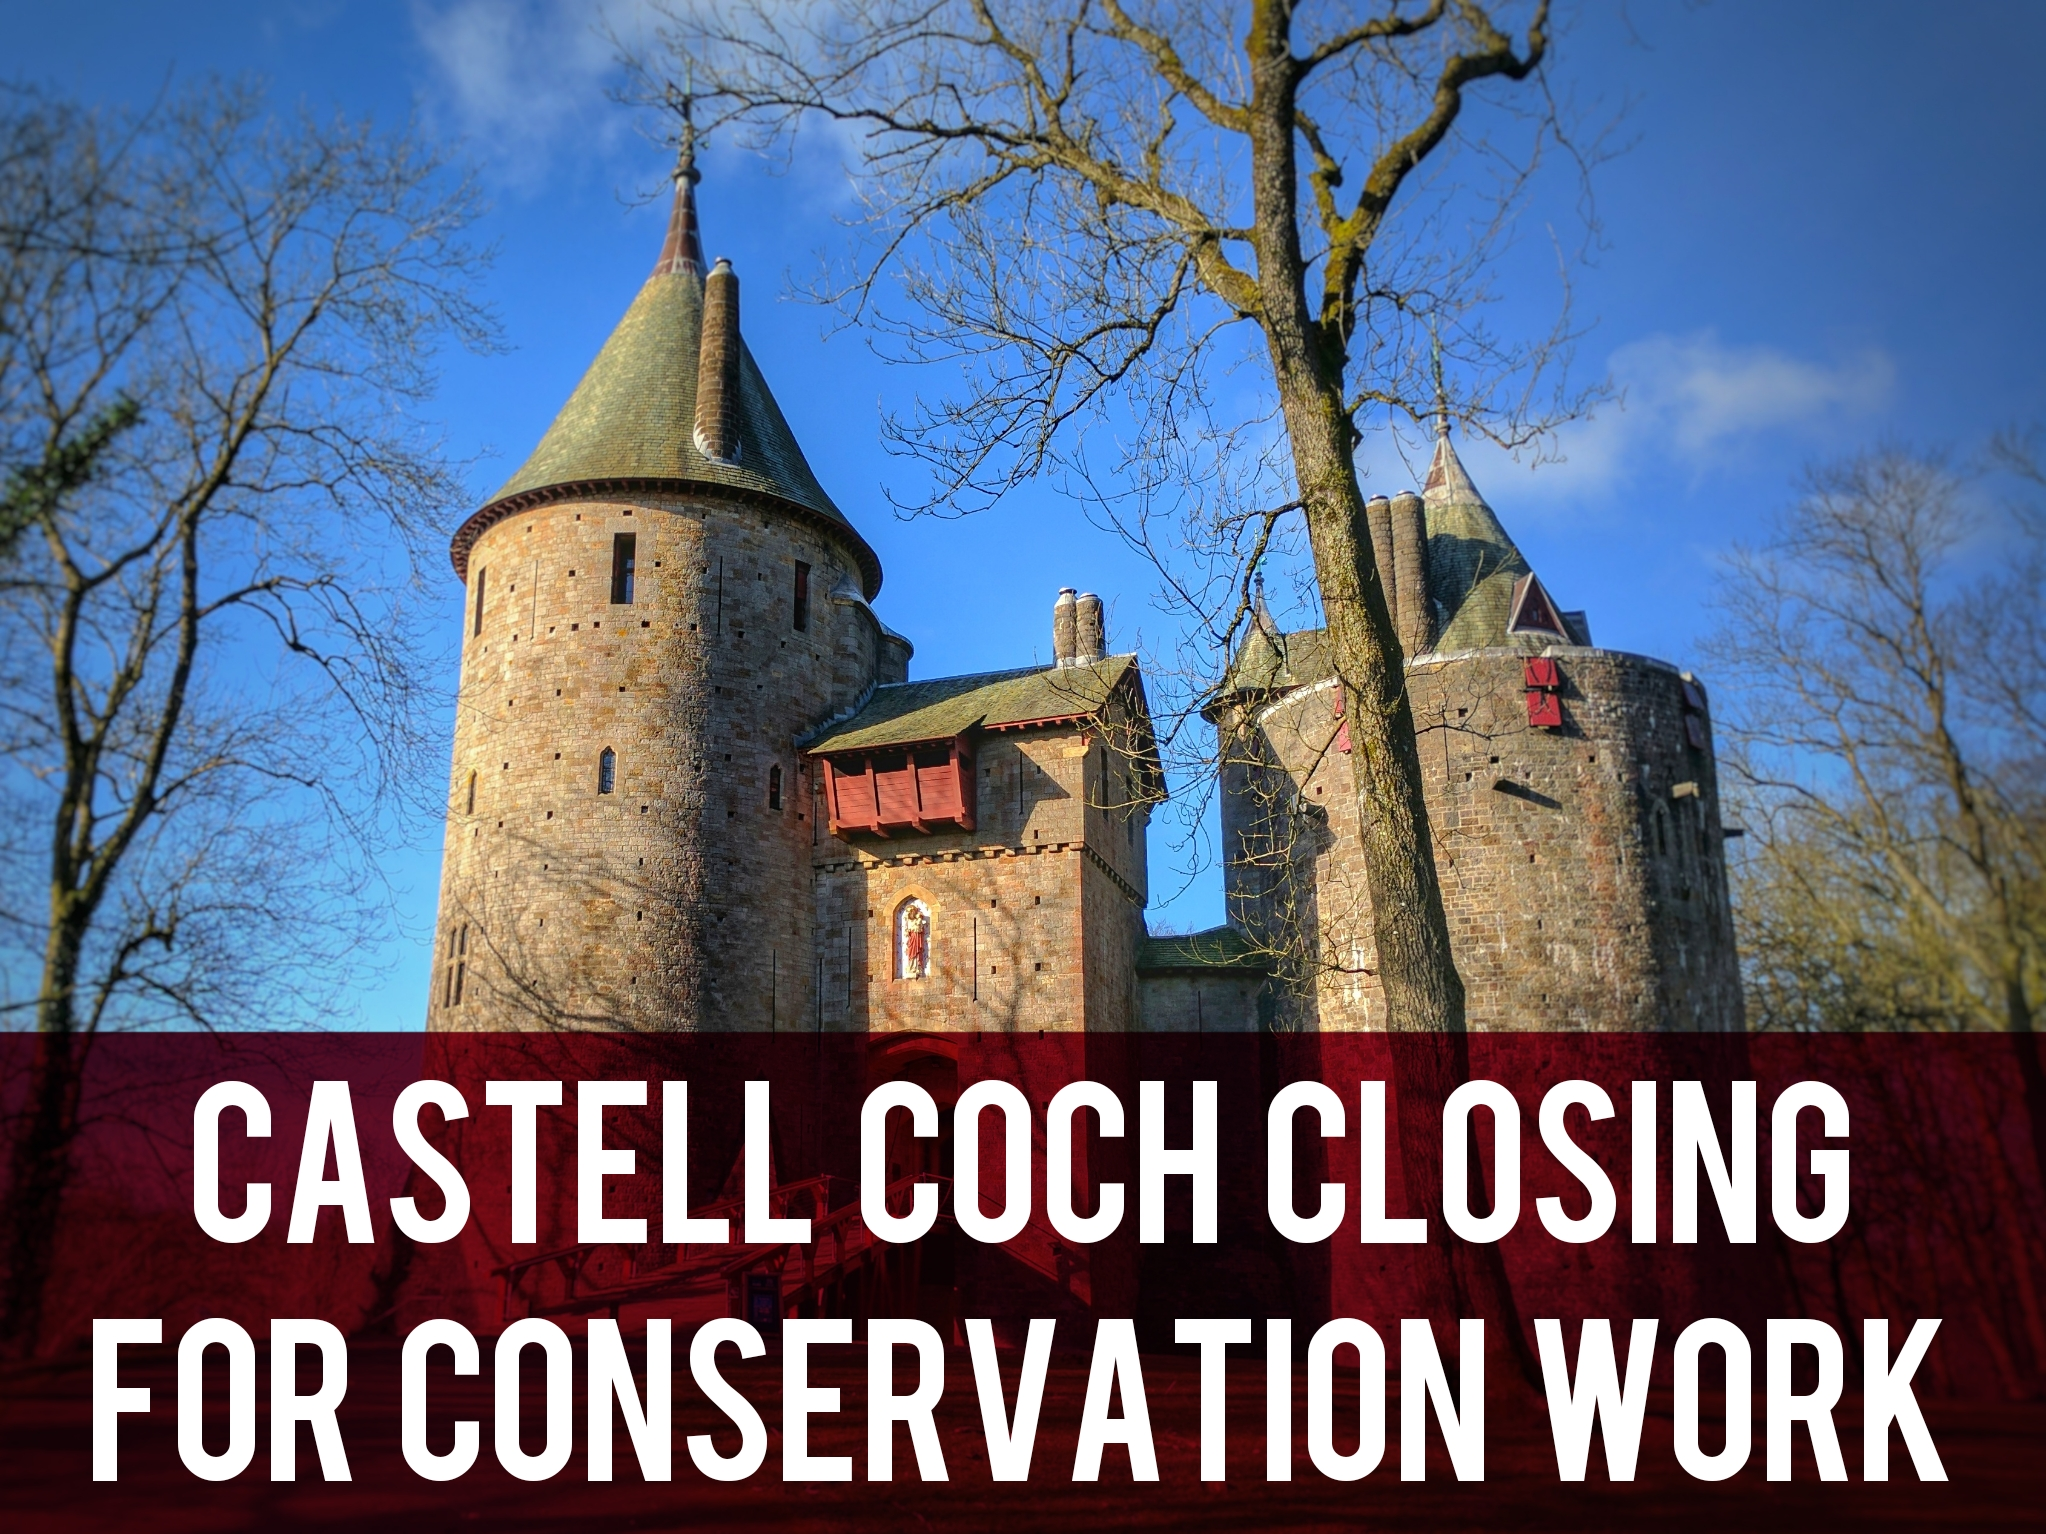 Castell Coch closing for conservation work header